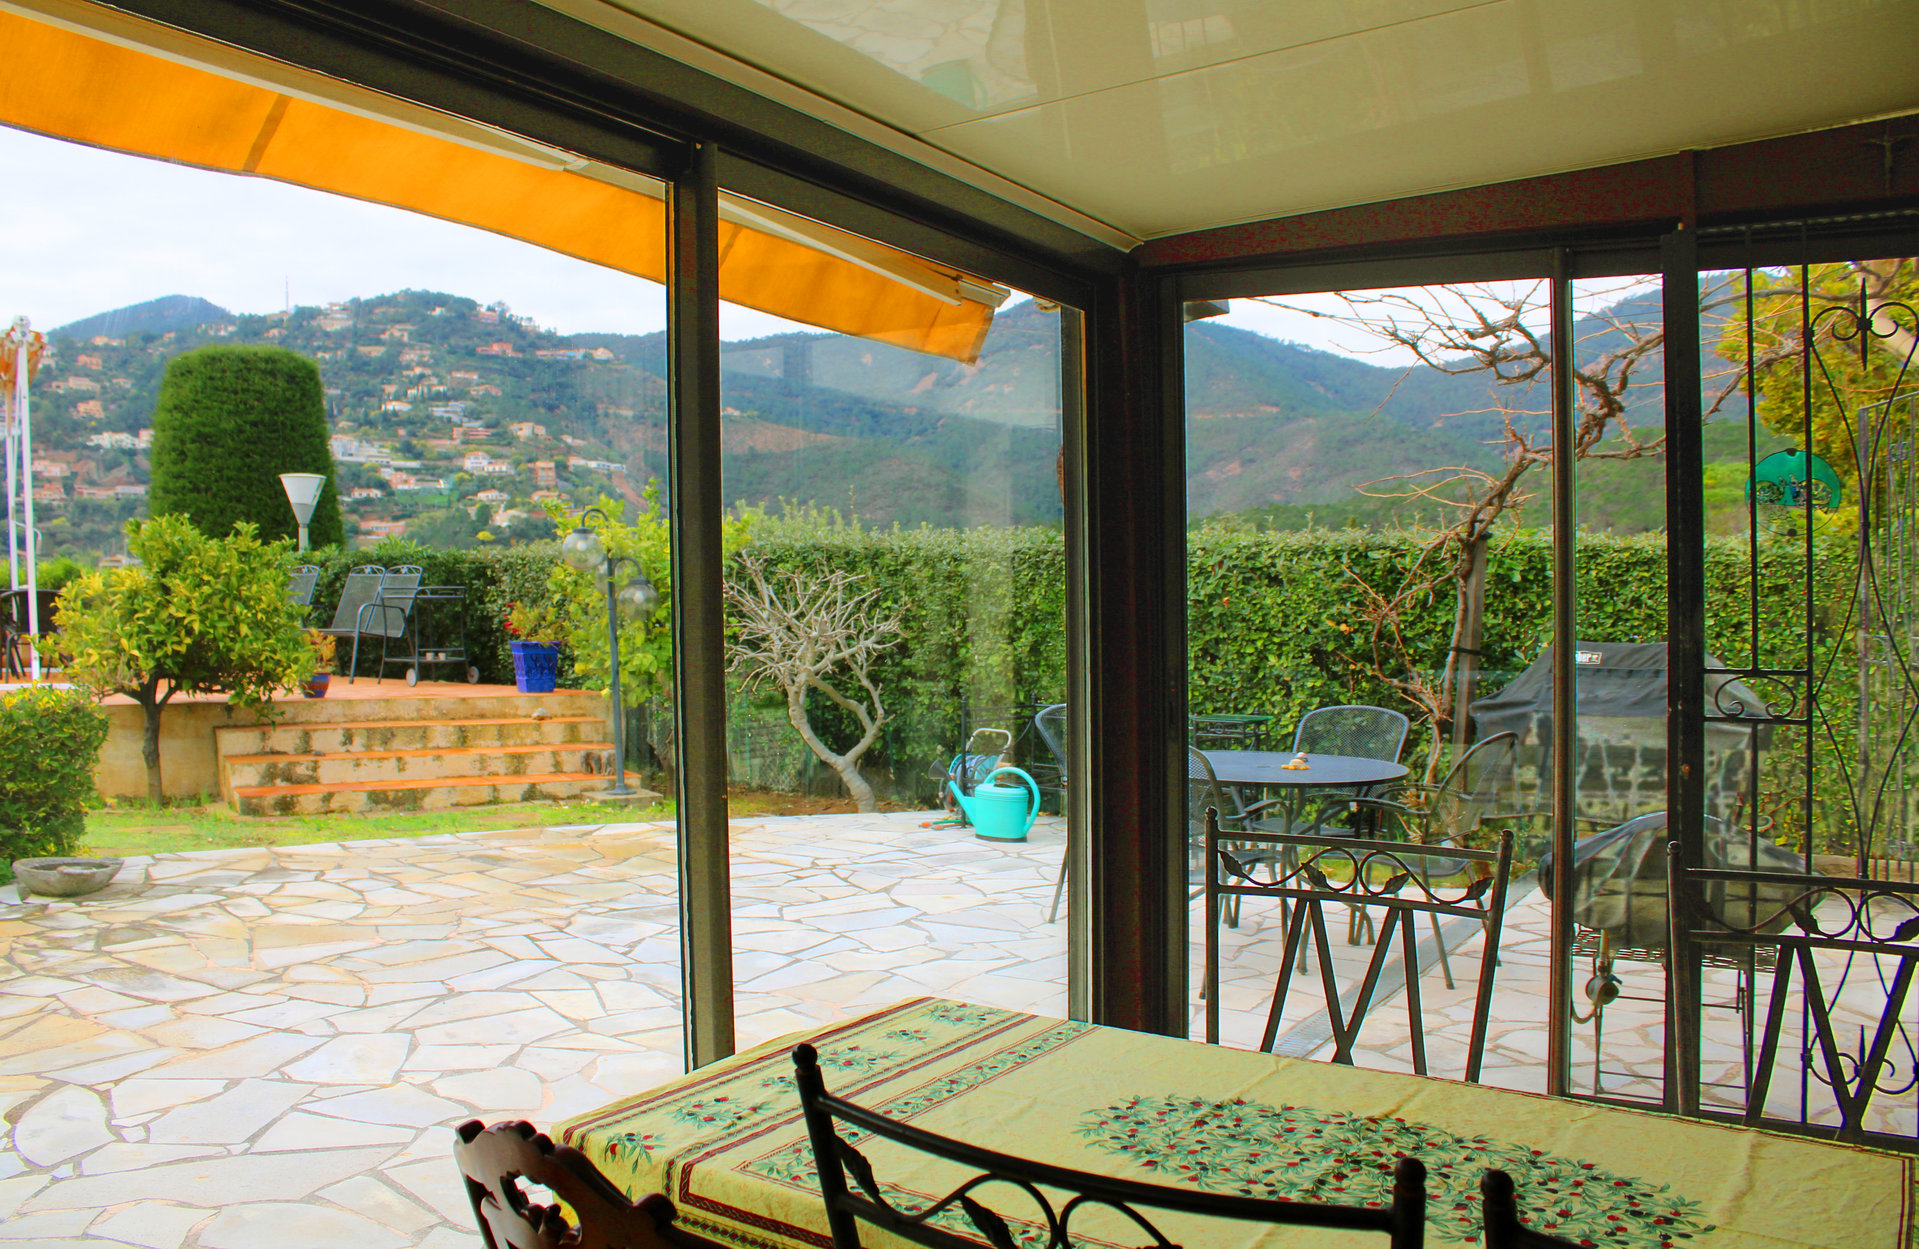 A lot of charm for this provencal mas provençal, located in a co-ownership.